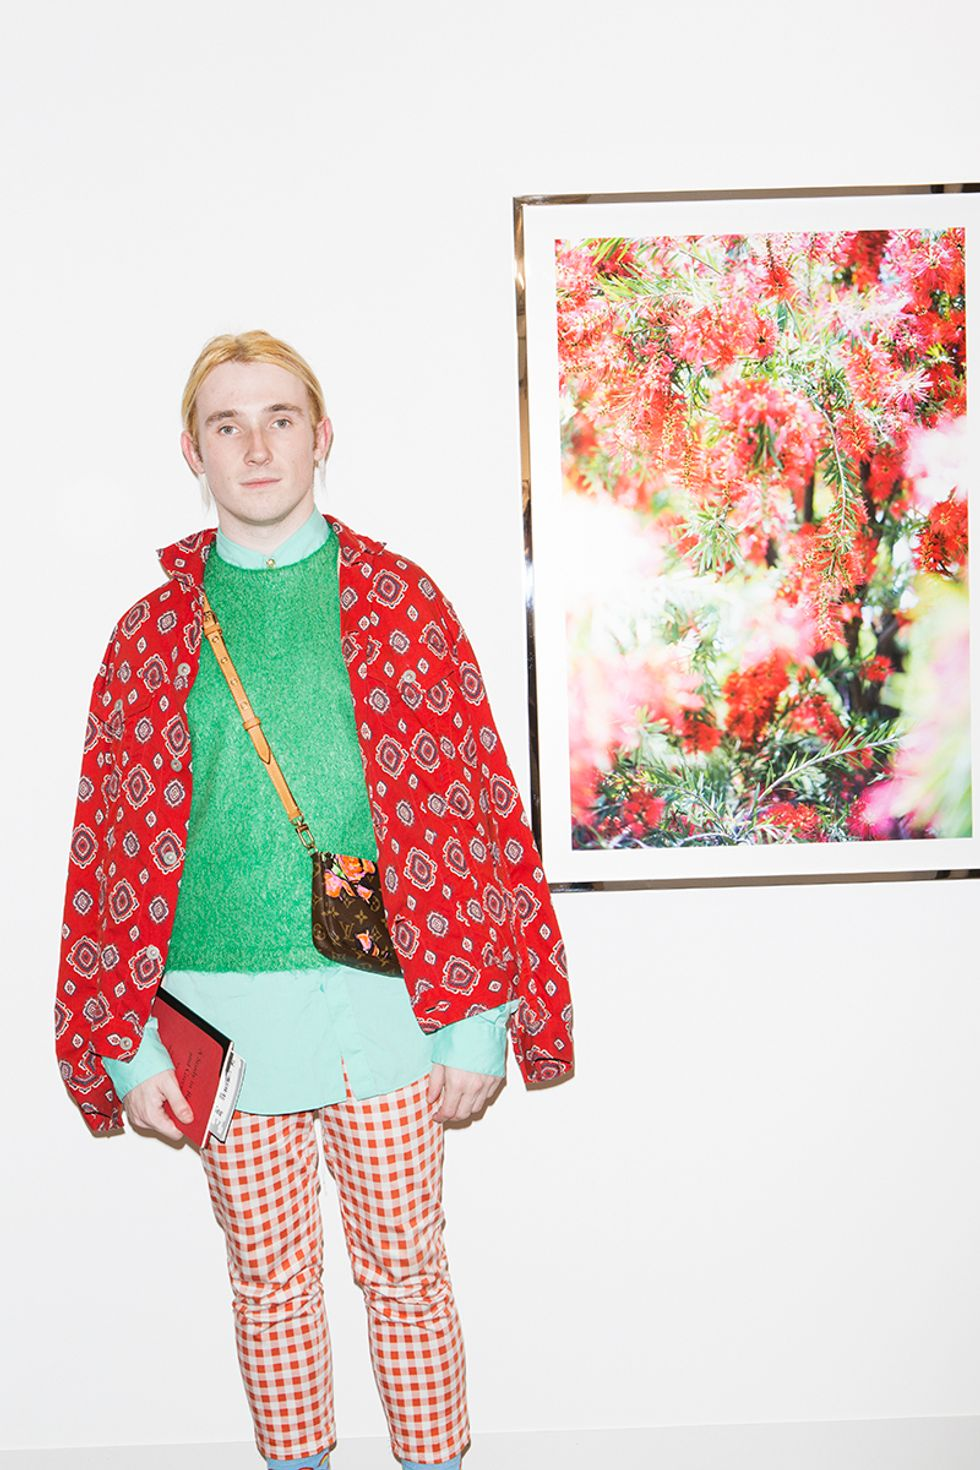 The Best Fashion -- and Art -- at the Frieze Art Fair in London